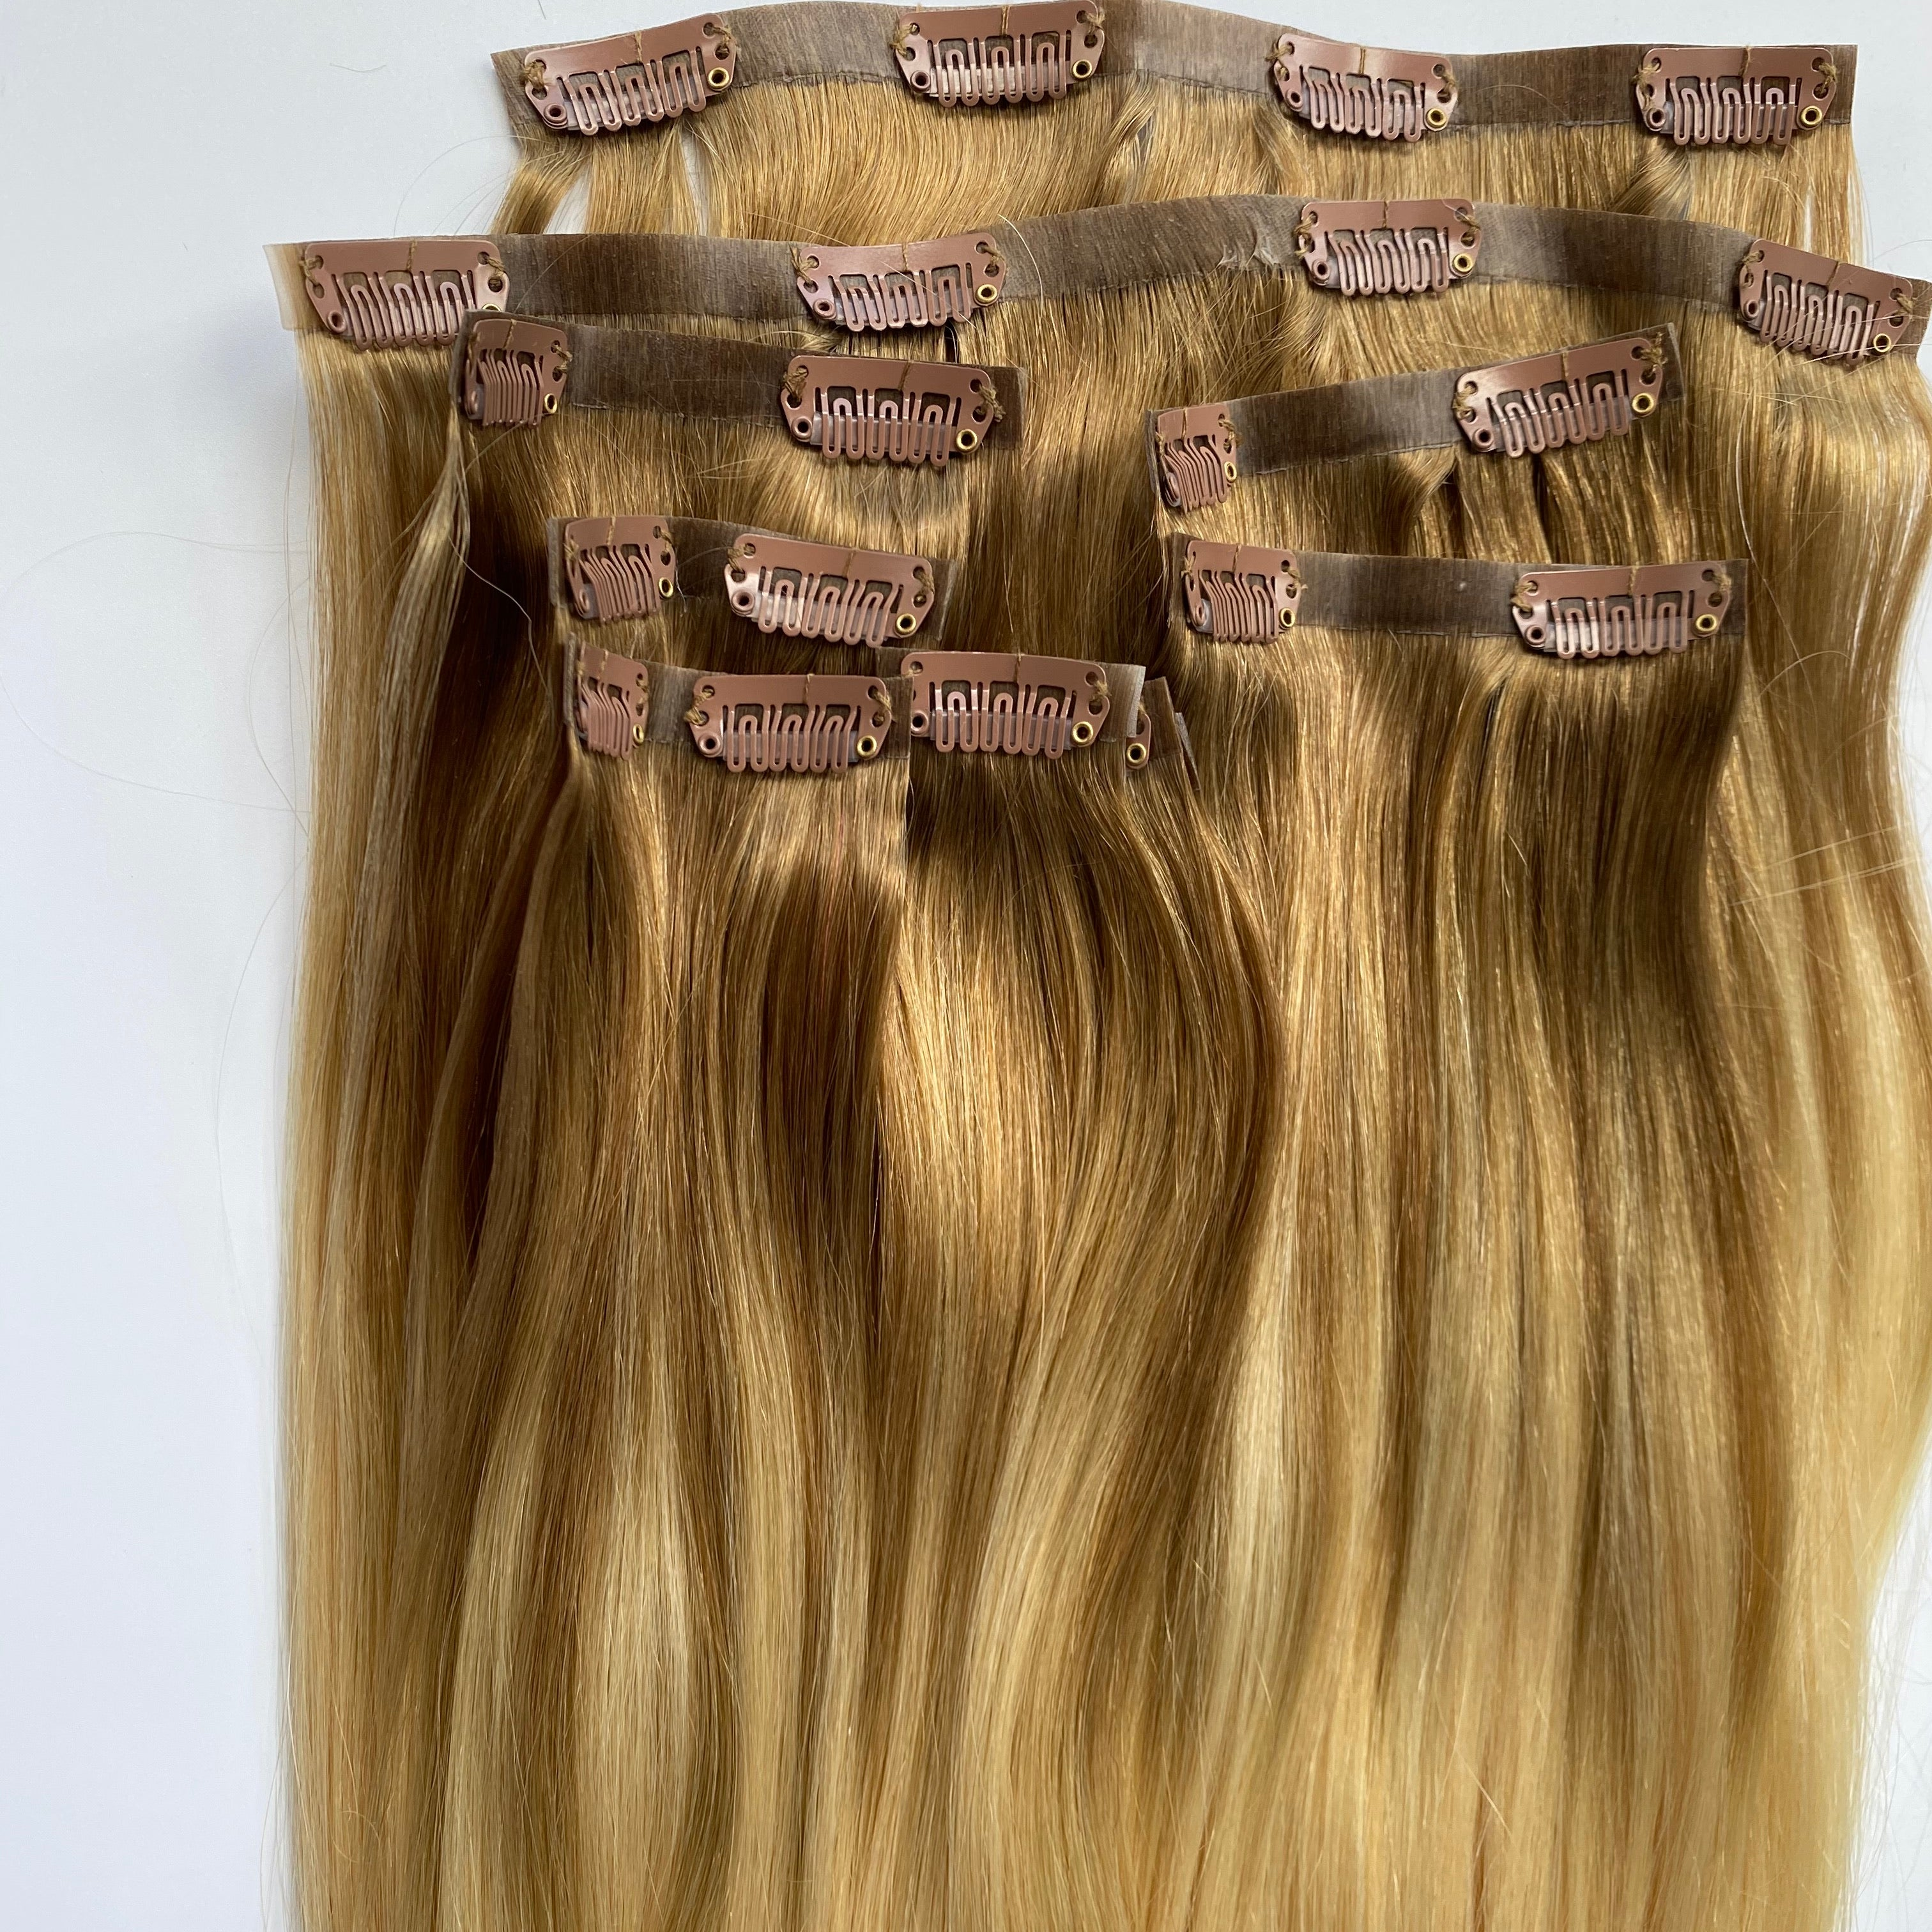 Milahnia Clip-Ins Rooted Blonde